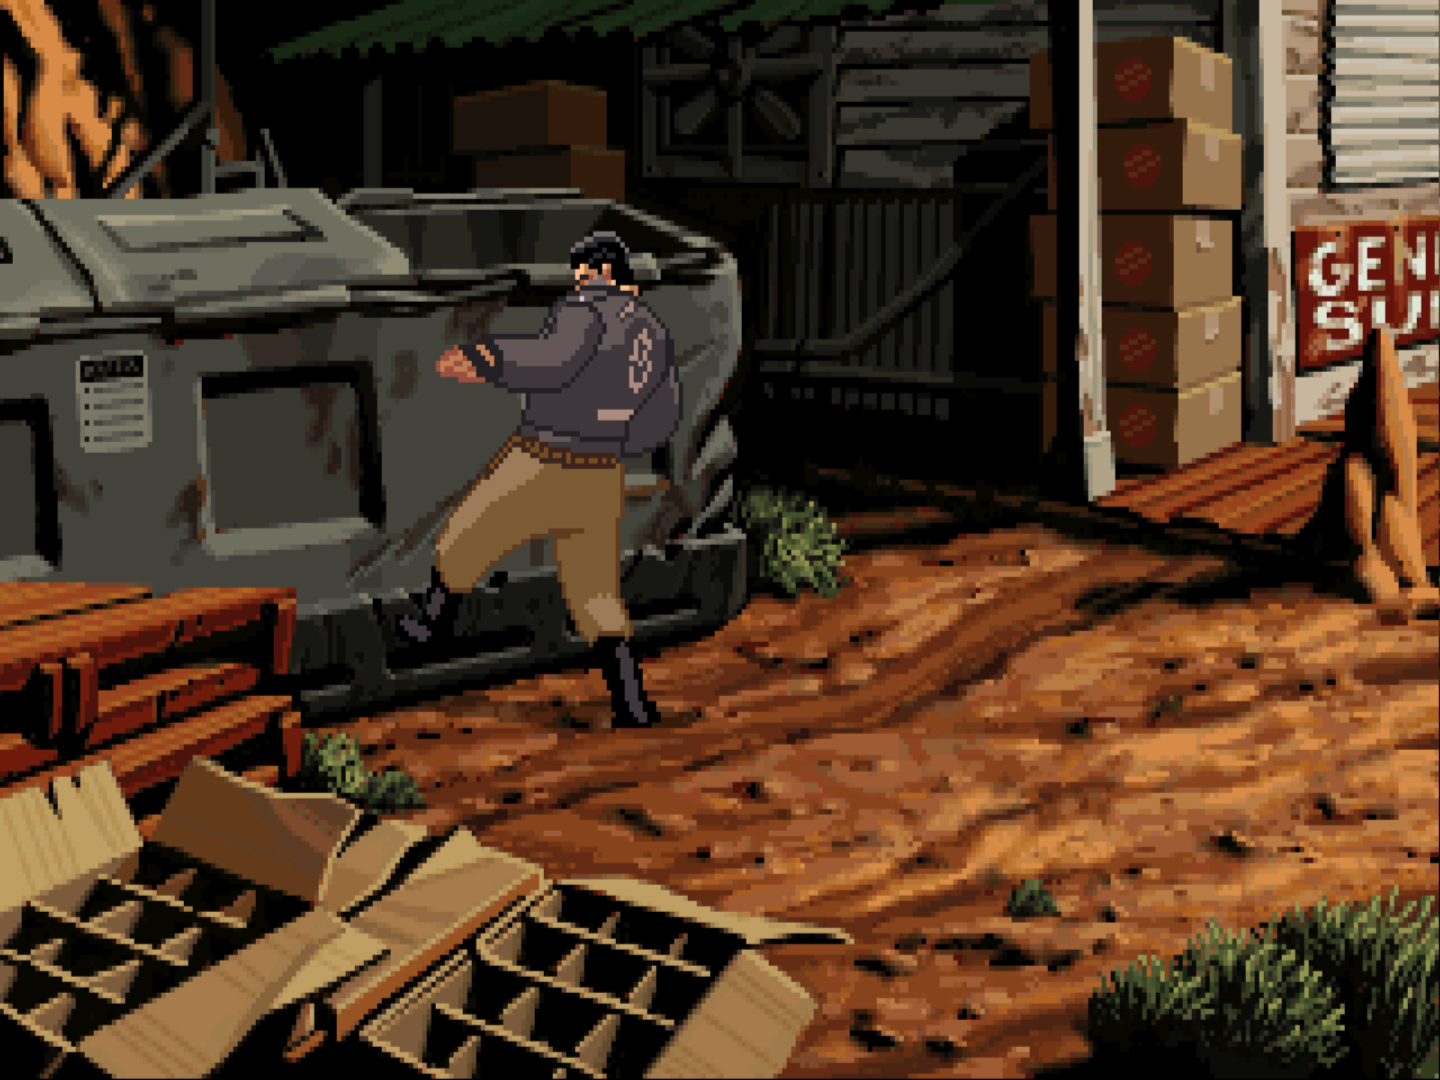 Full Throttle screenshot 2.